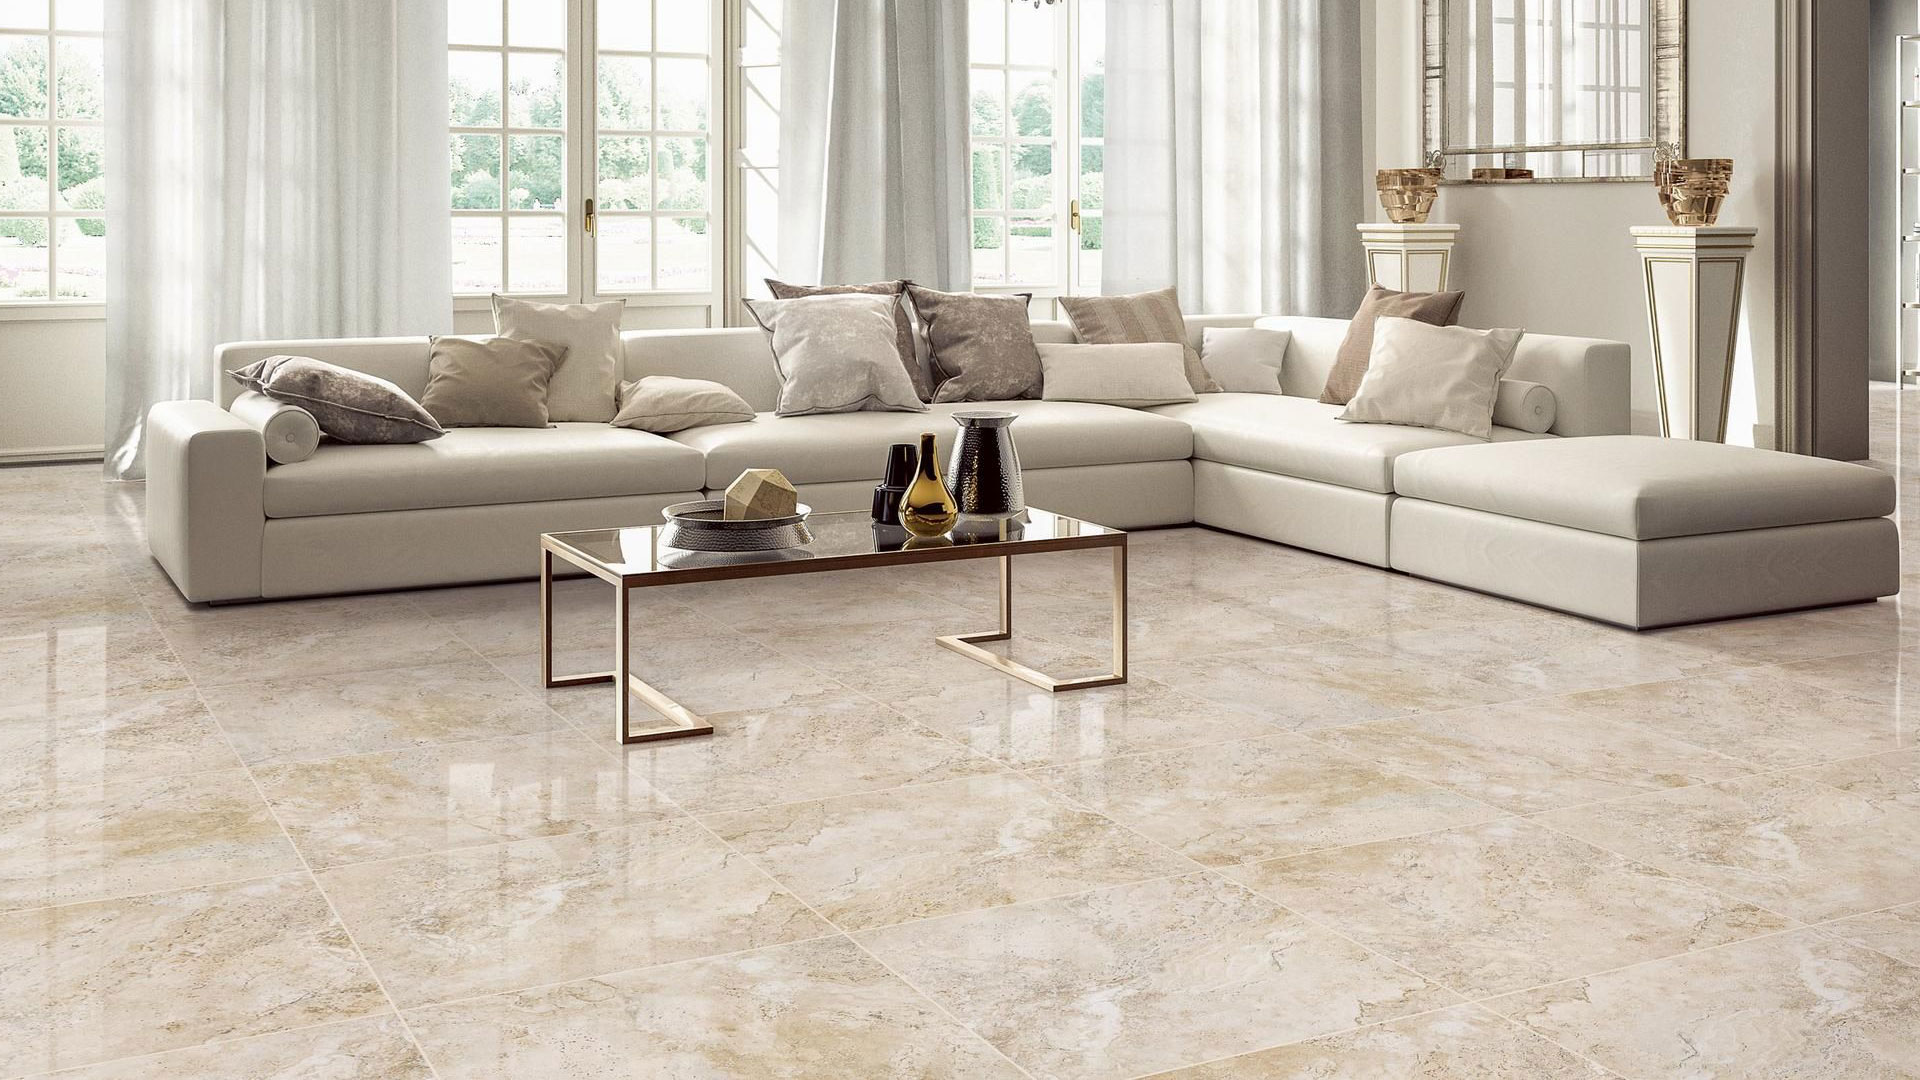 Porcelain Tiles for your Home Remodeling project in Hernando, FL